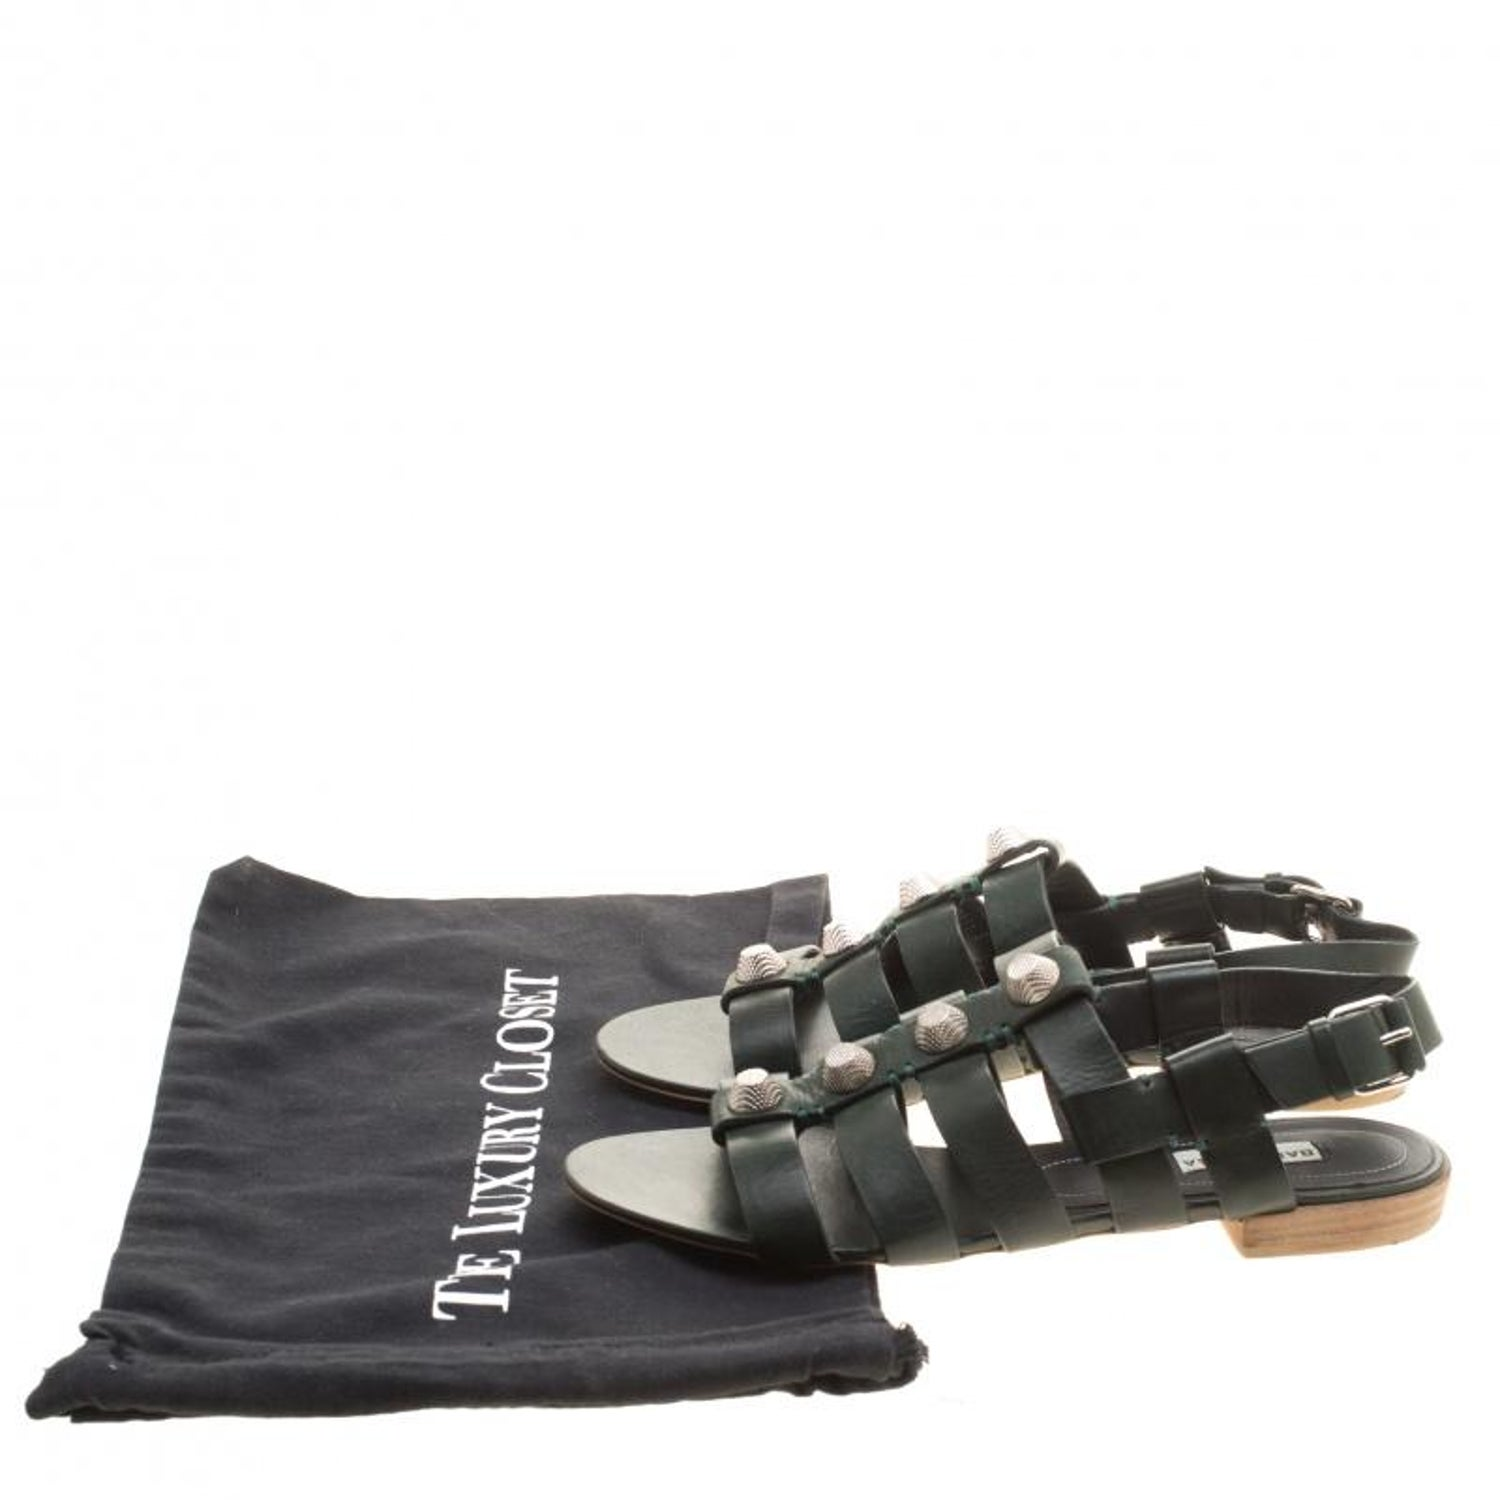 9a38b4341 Balenciaga Green Leather Giant Gladiator Sandals Size 39 For Sale at 1stdibs